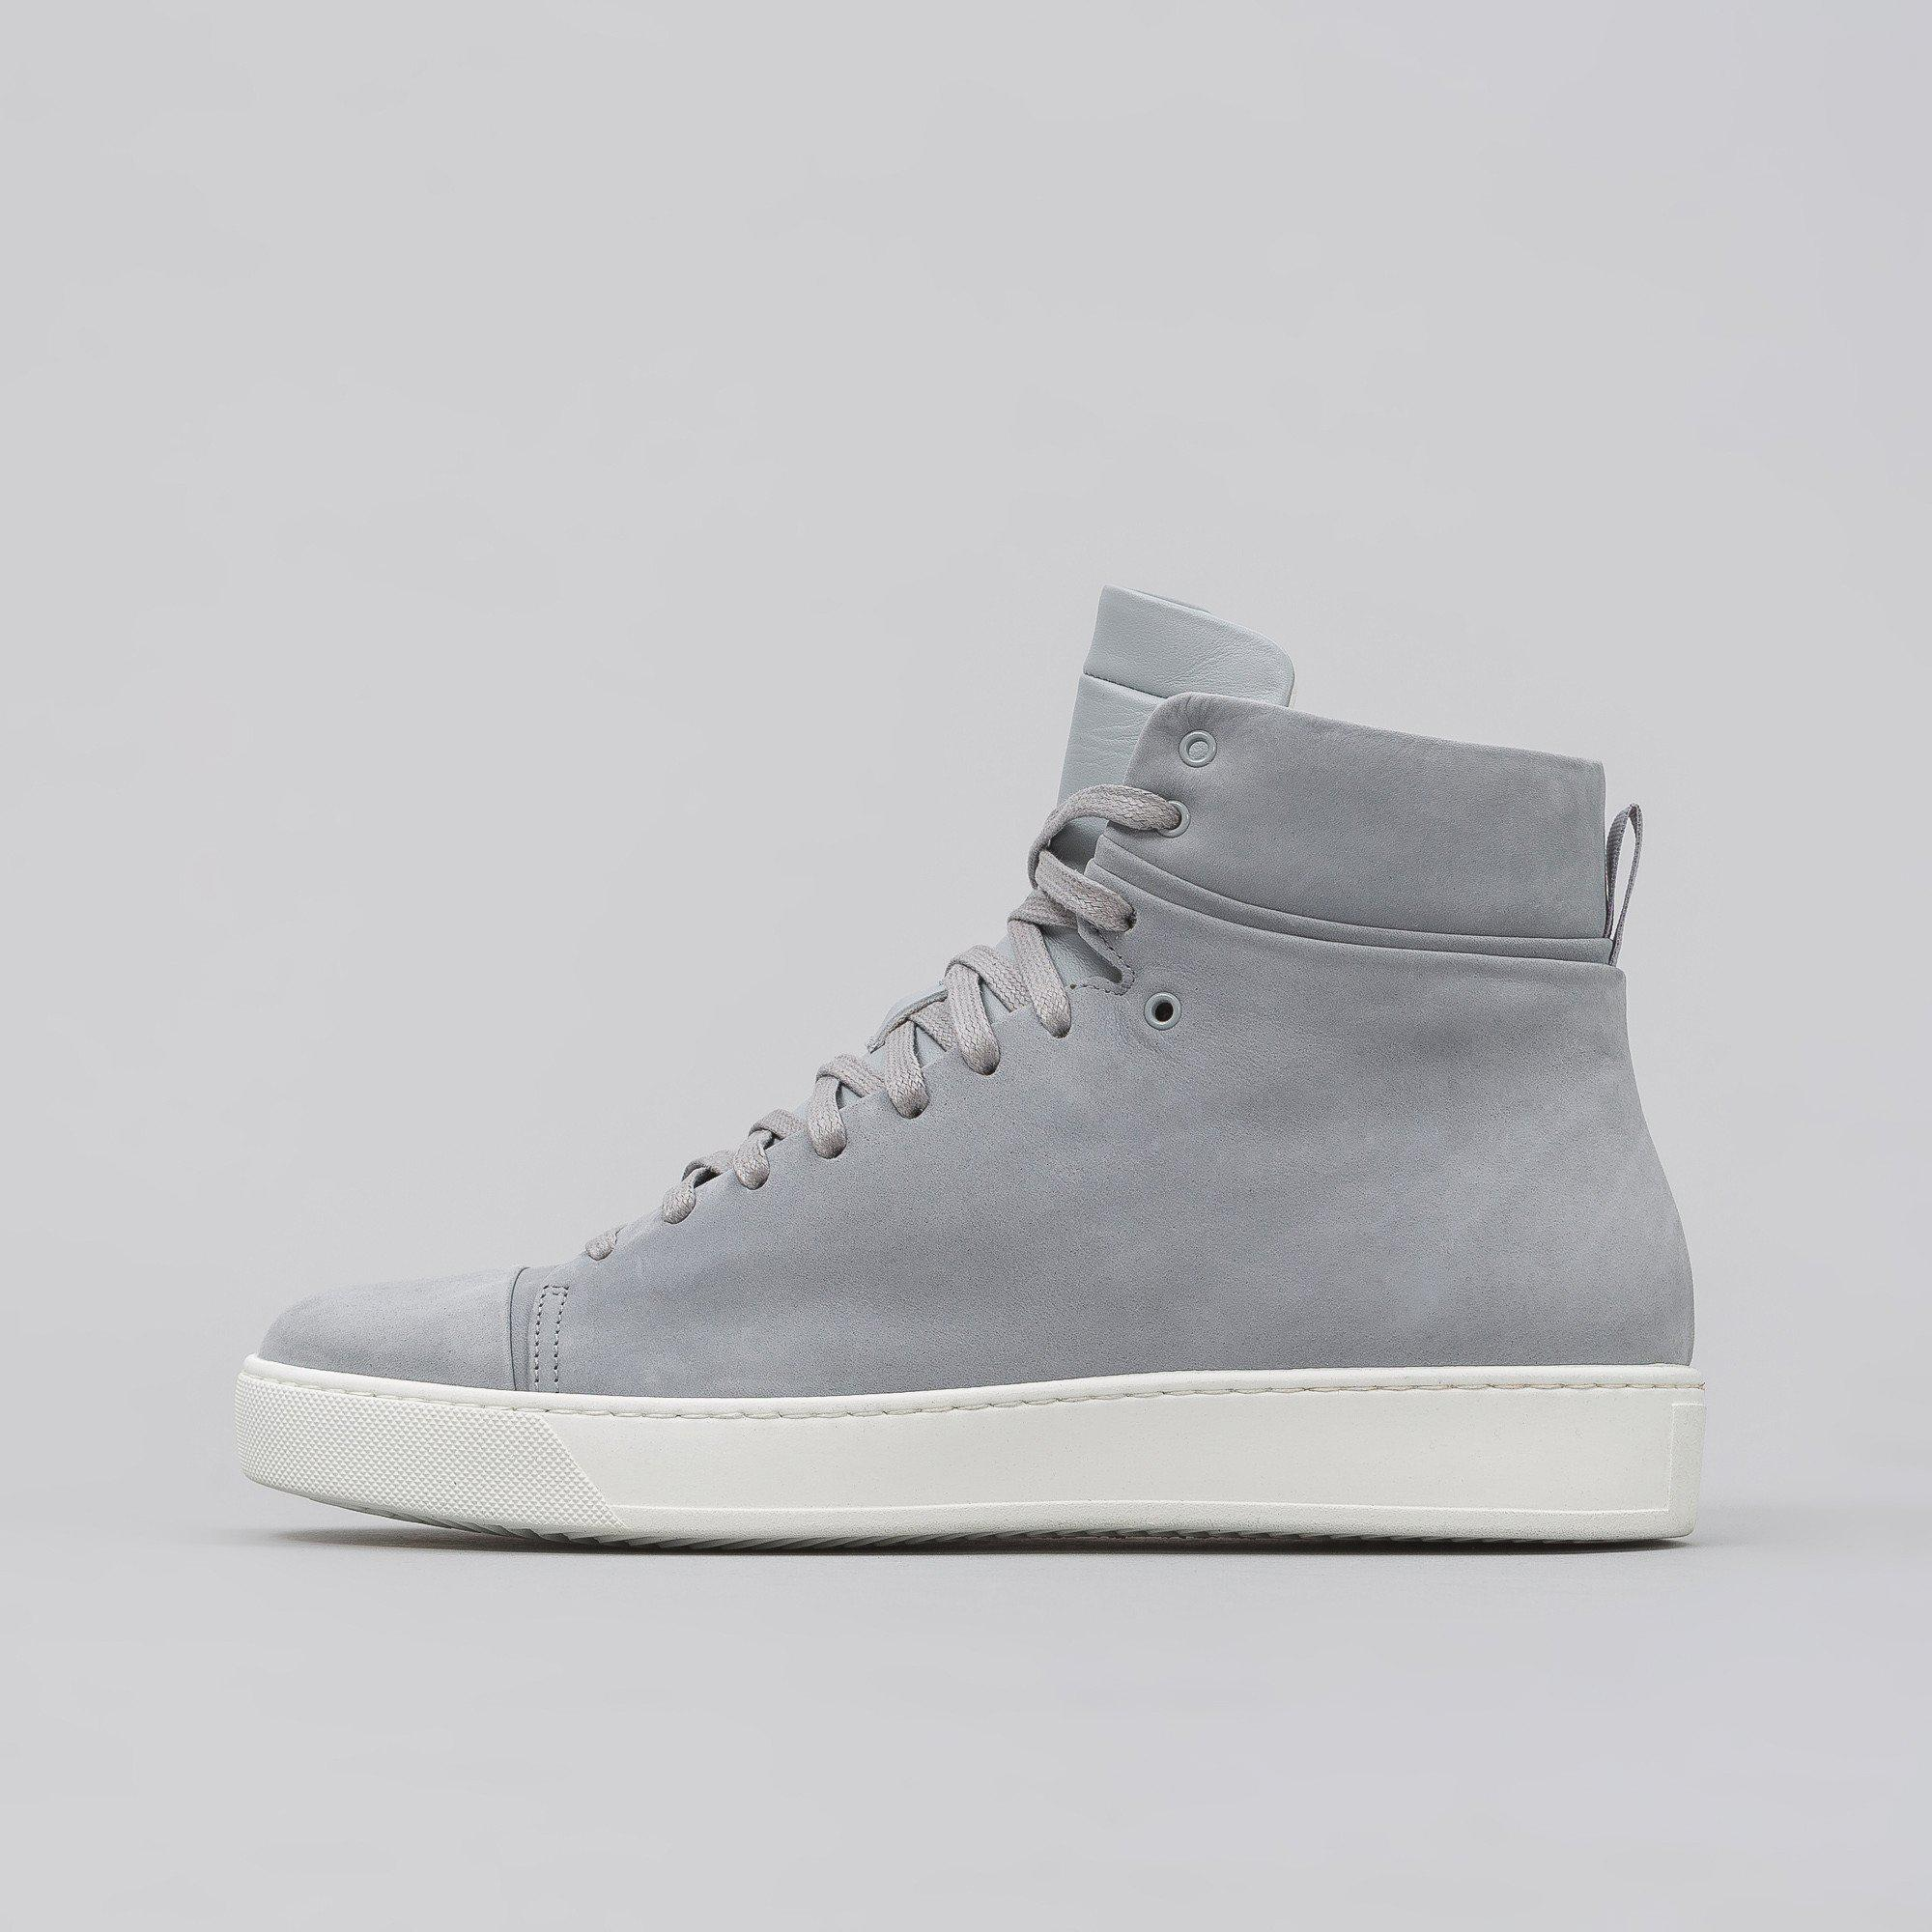 JOHN ELLIOTTLeather High Top Sneakers in . a9qZUPdulV